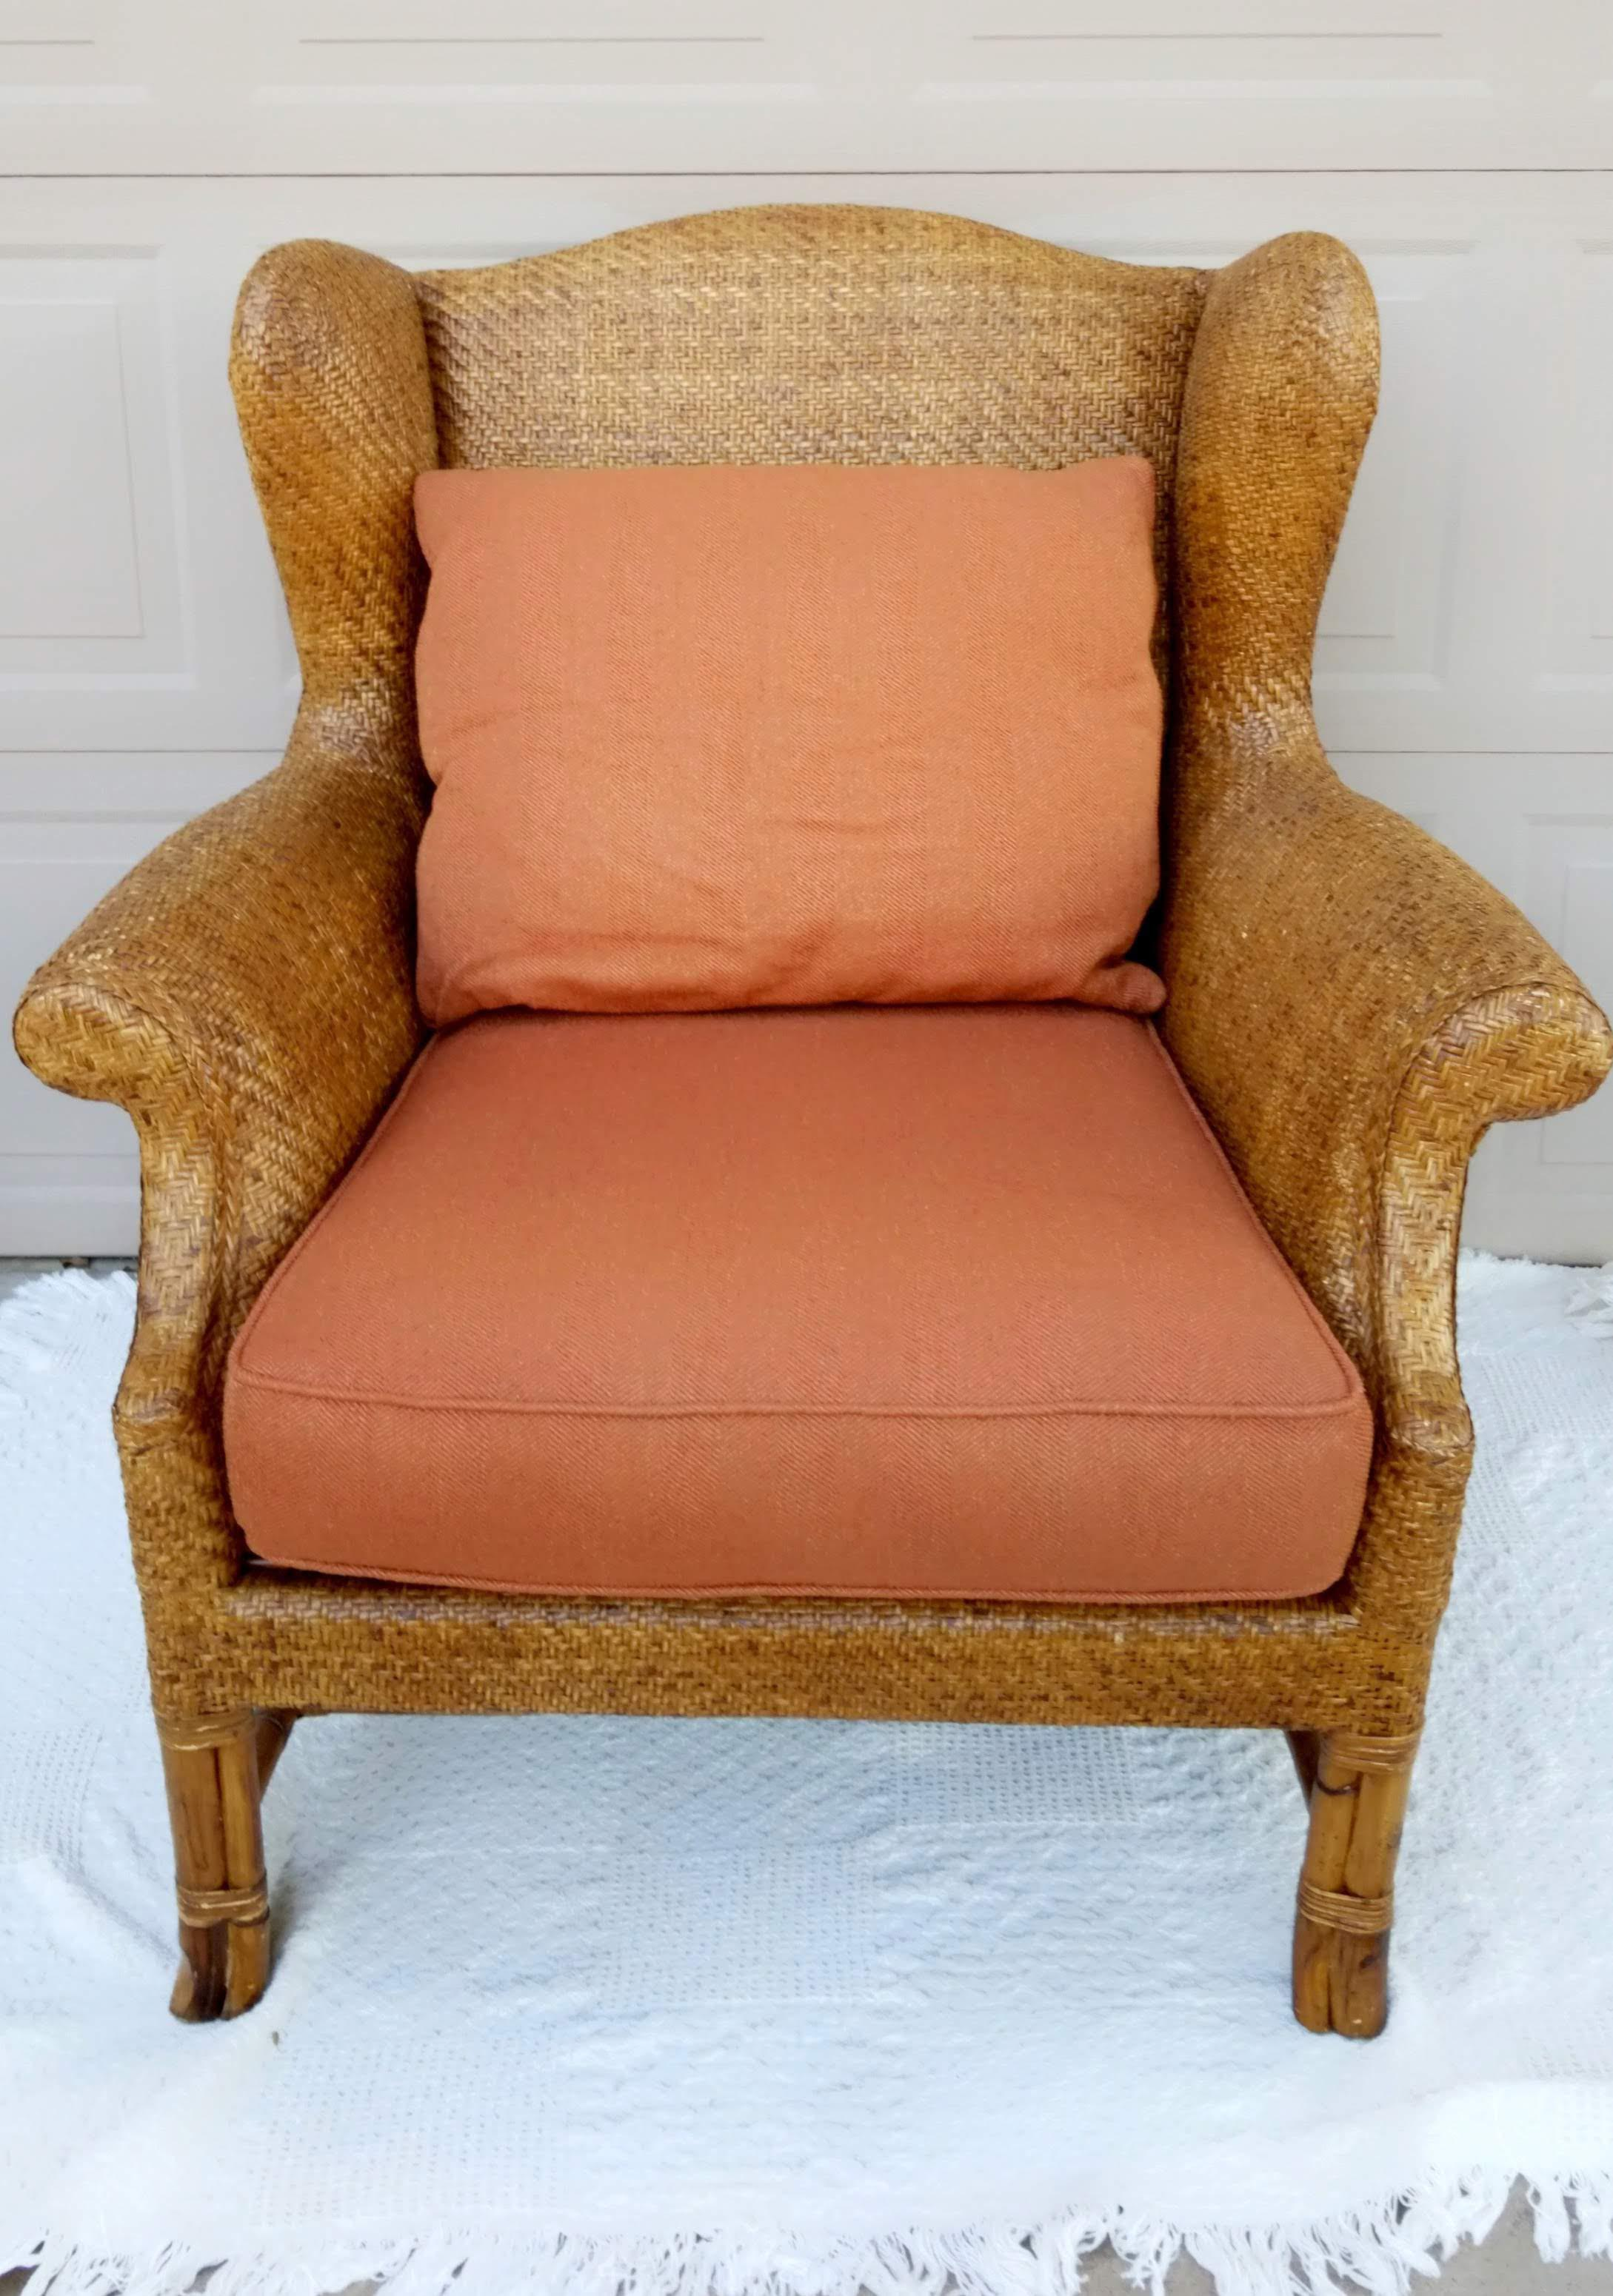 Nice Part Of Bakeru0027s Milling Road Collection A Gorgeous Rattan Wingback With  Upholstered Seat And Back Cushion